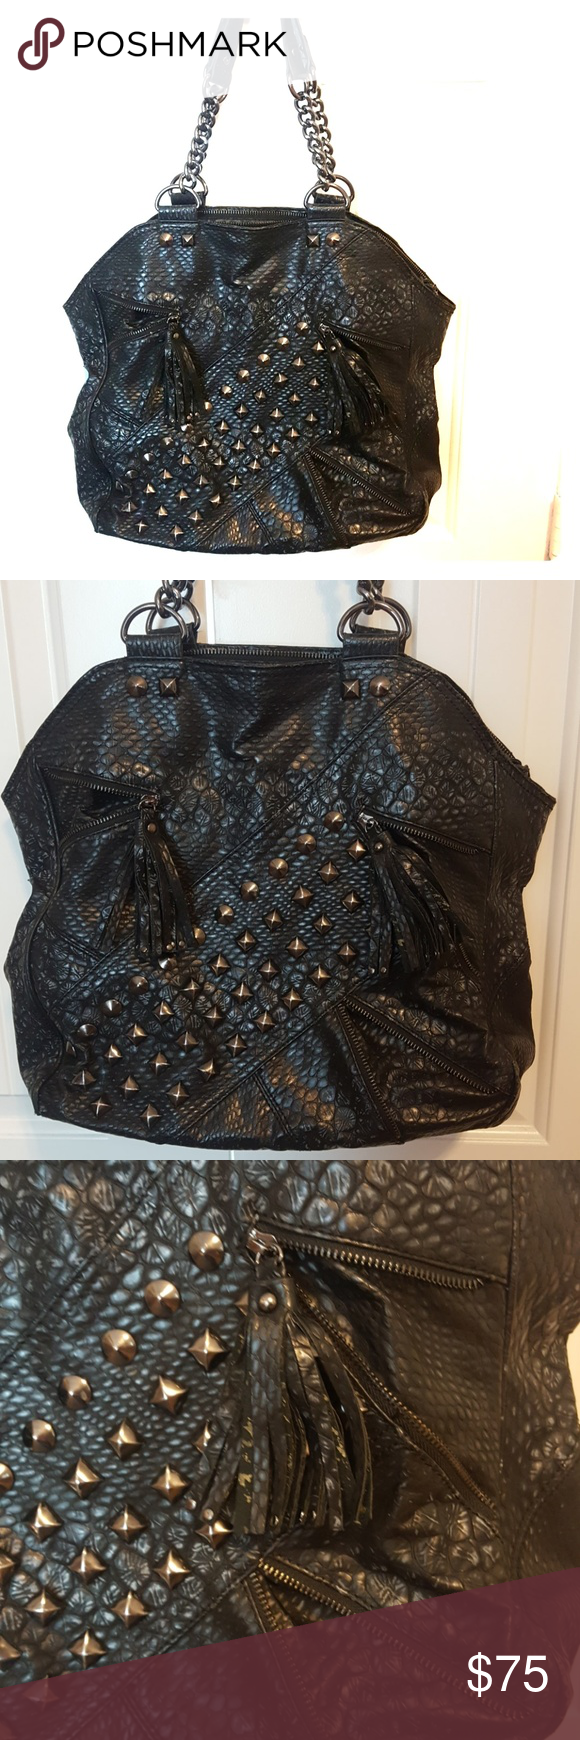 Affliction Studded Moto Handbag Snakeskin Looking With Lots Of Silver Accents Fringe Zipper Large Room